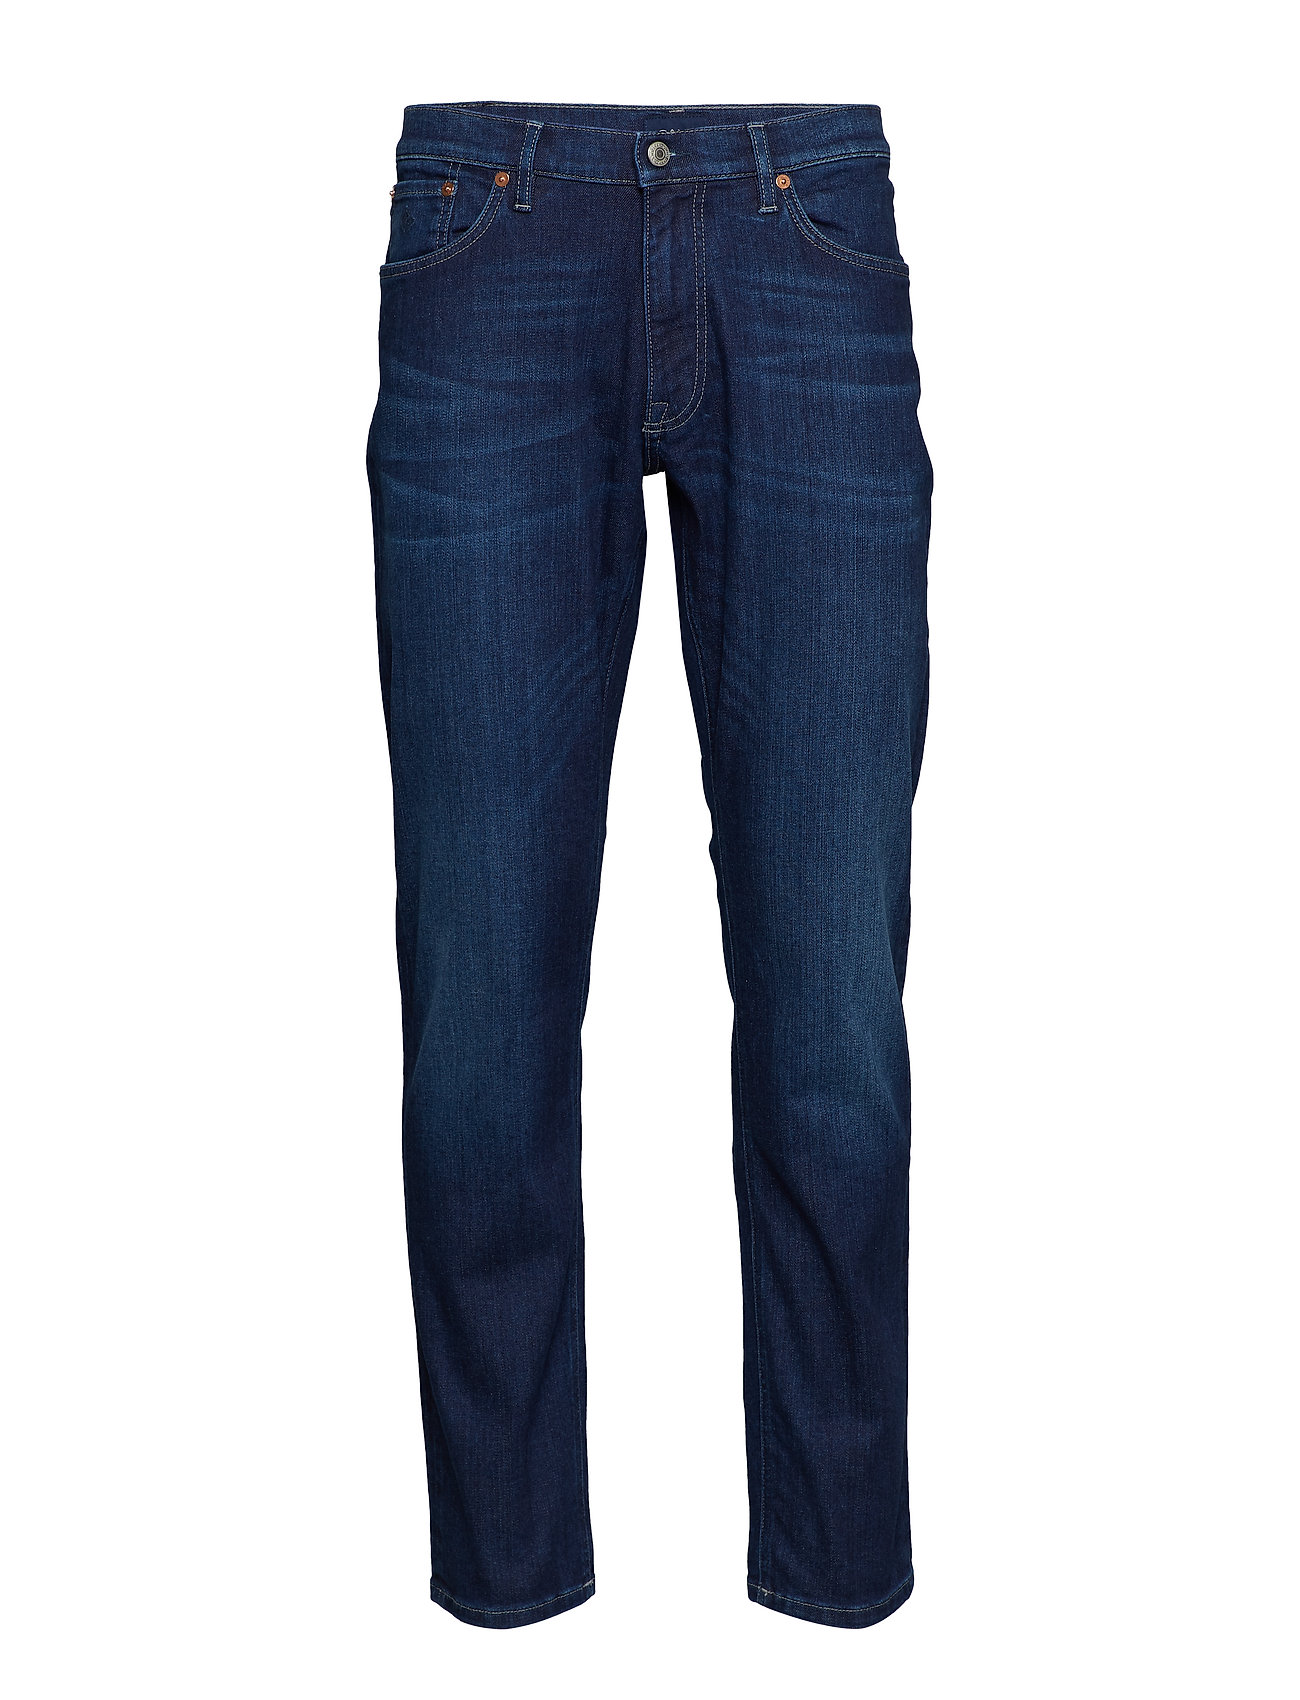 GANT O1. SLIM BISTRETCH JEANS Jeans